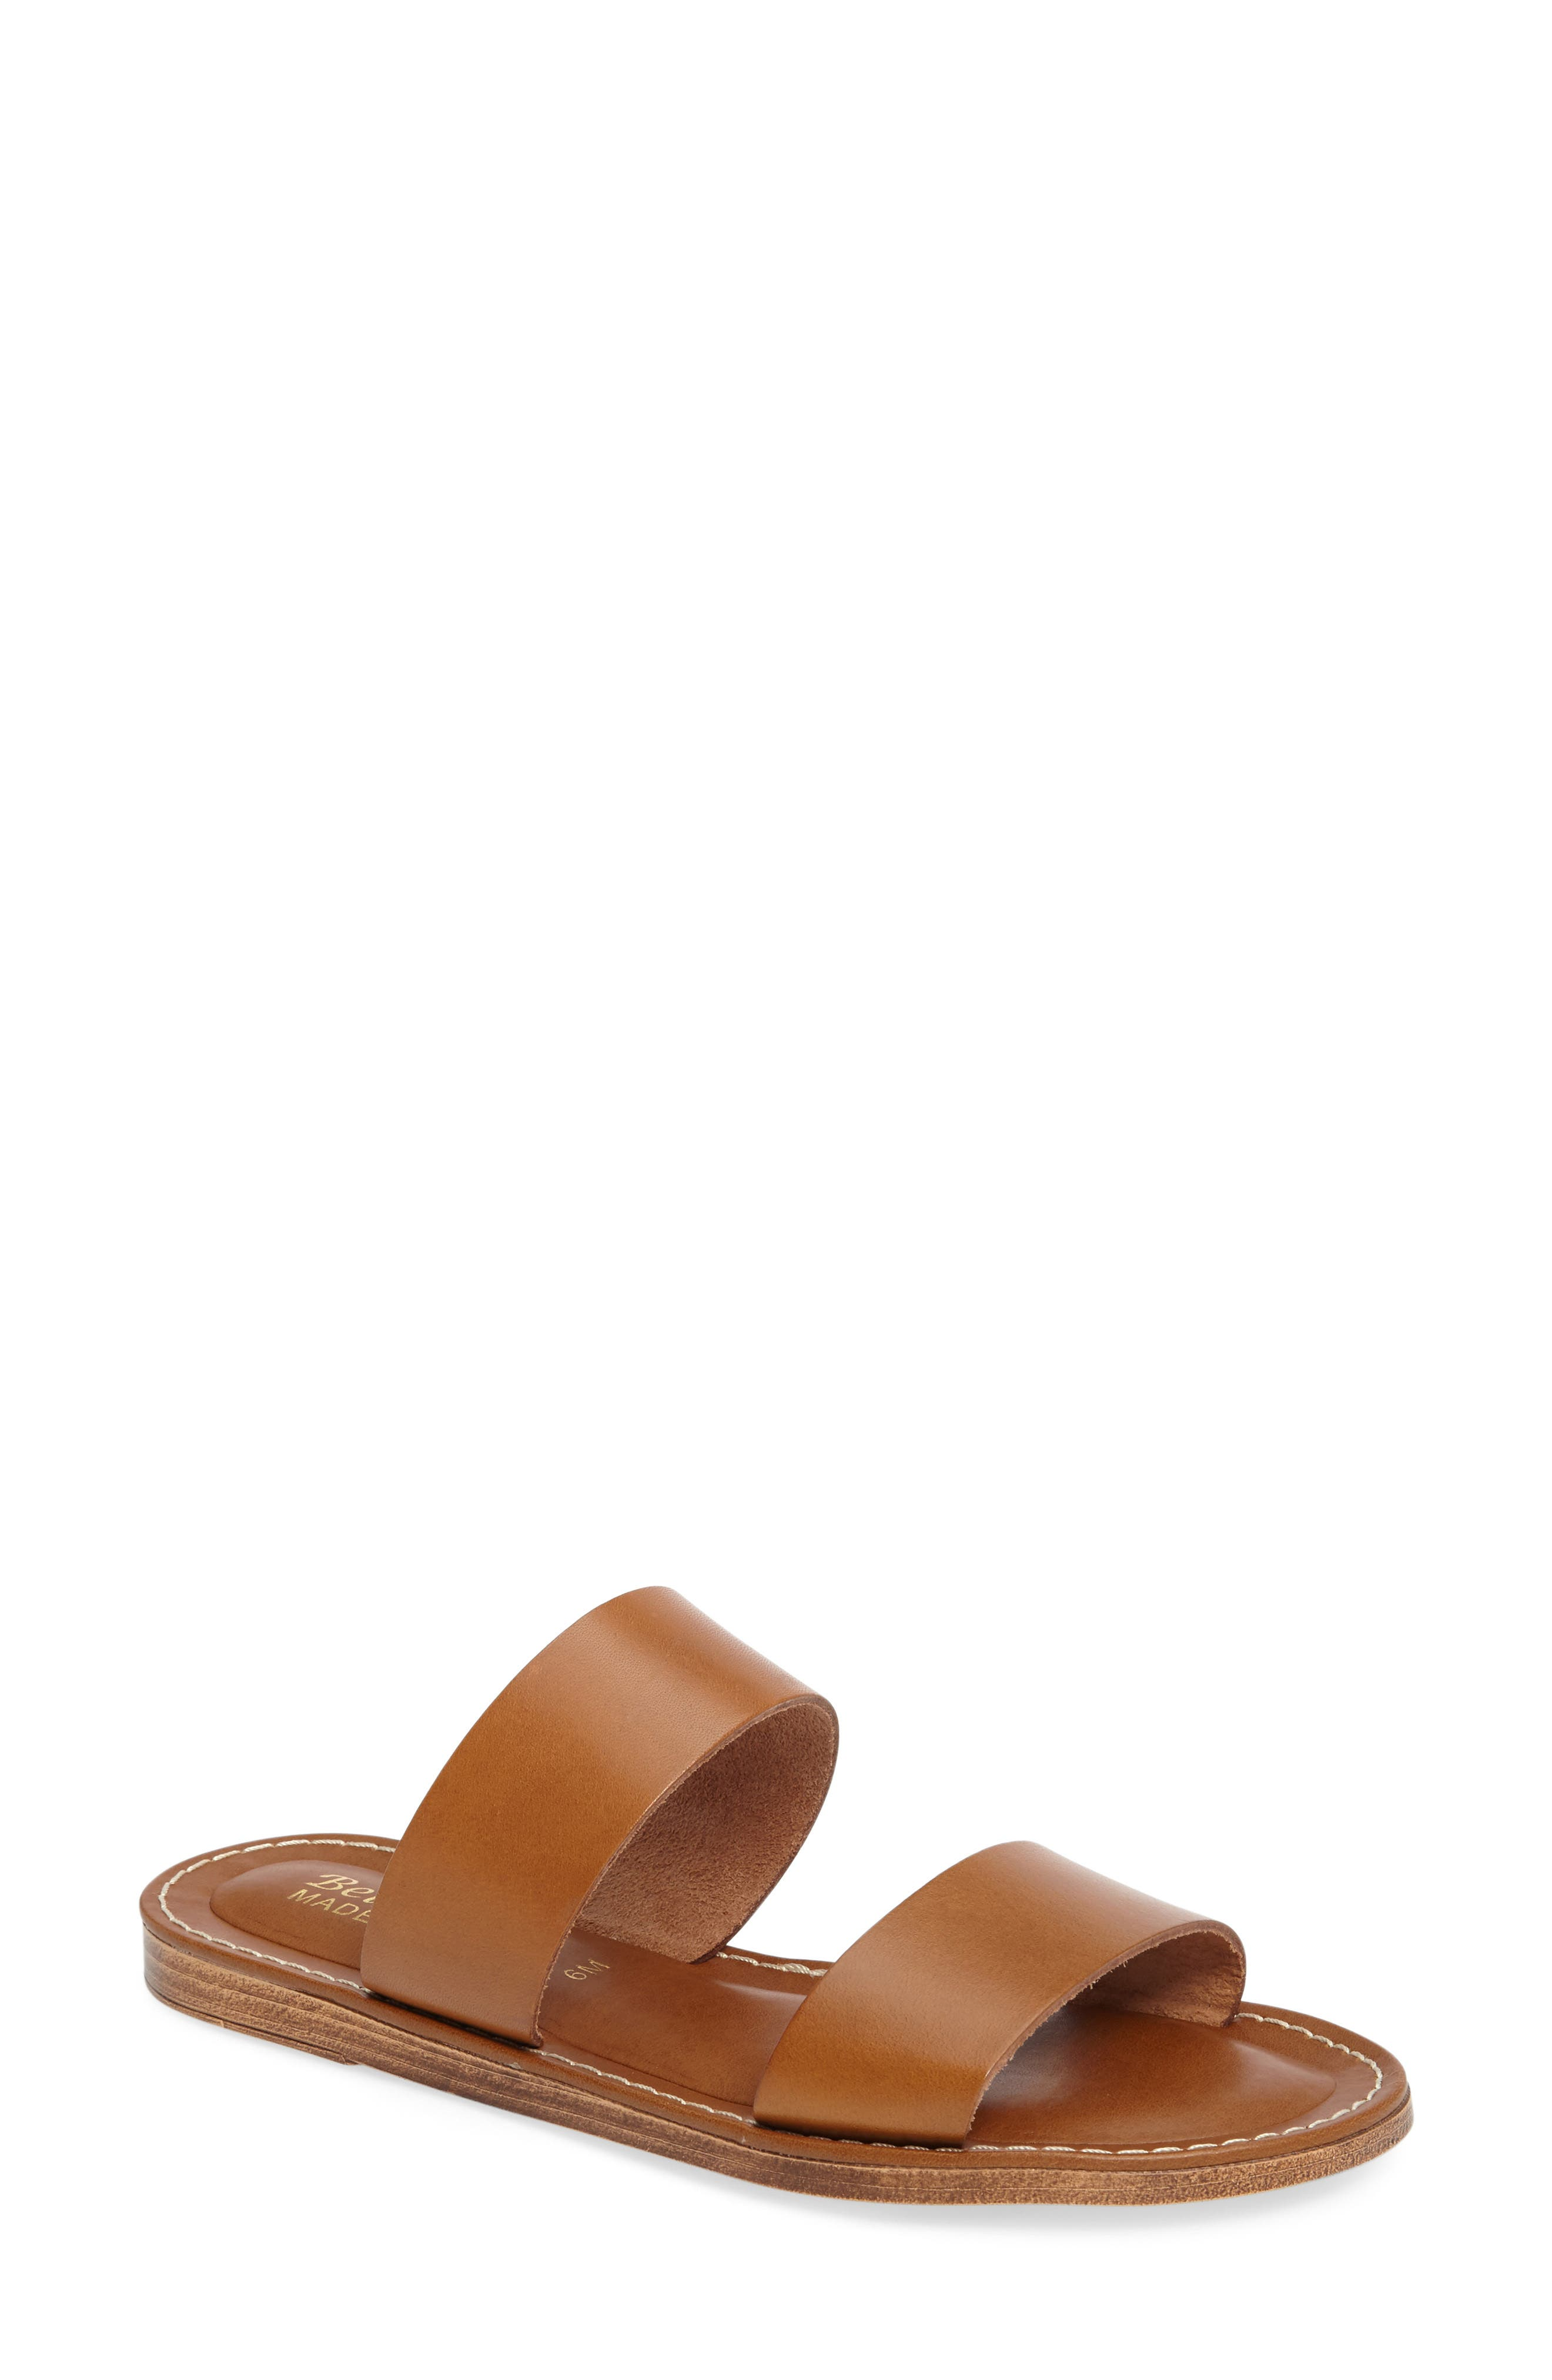 Imo Slide Sandal,                         Main,                         color, Whiskey Leather